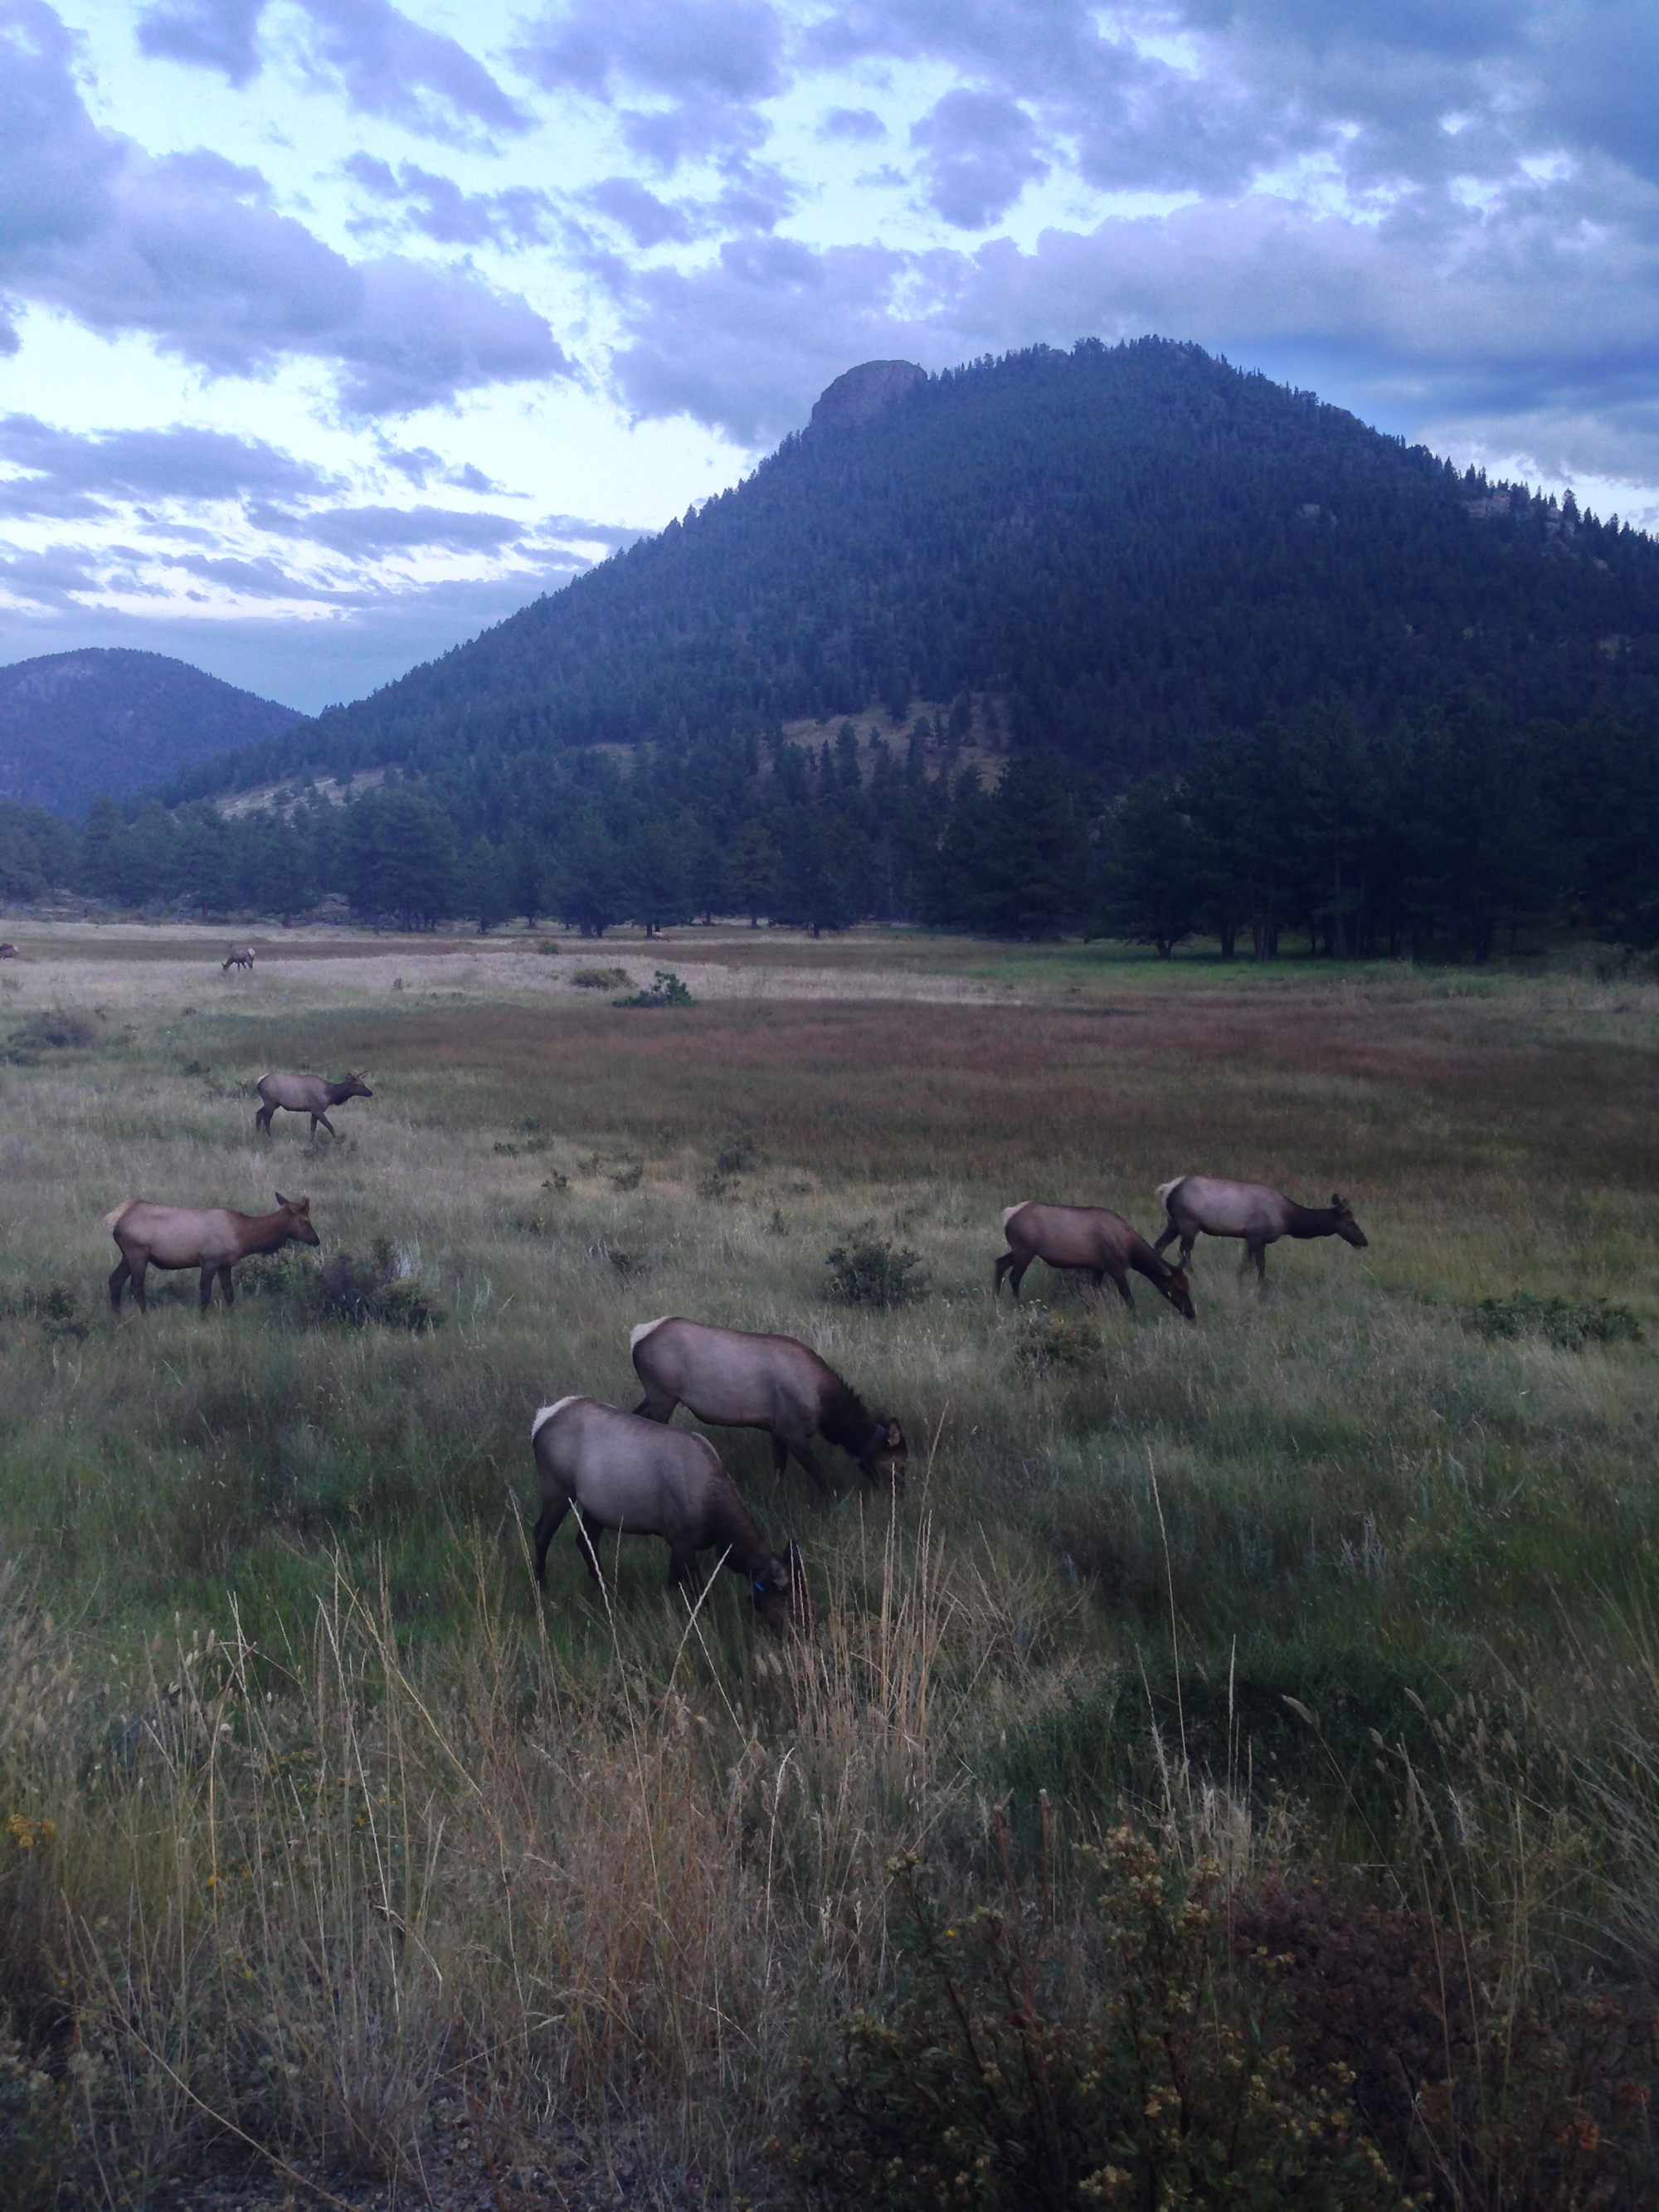 Wildlife in Rocky Mountain National Park, CO